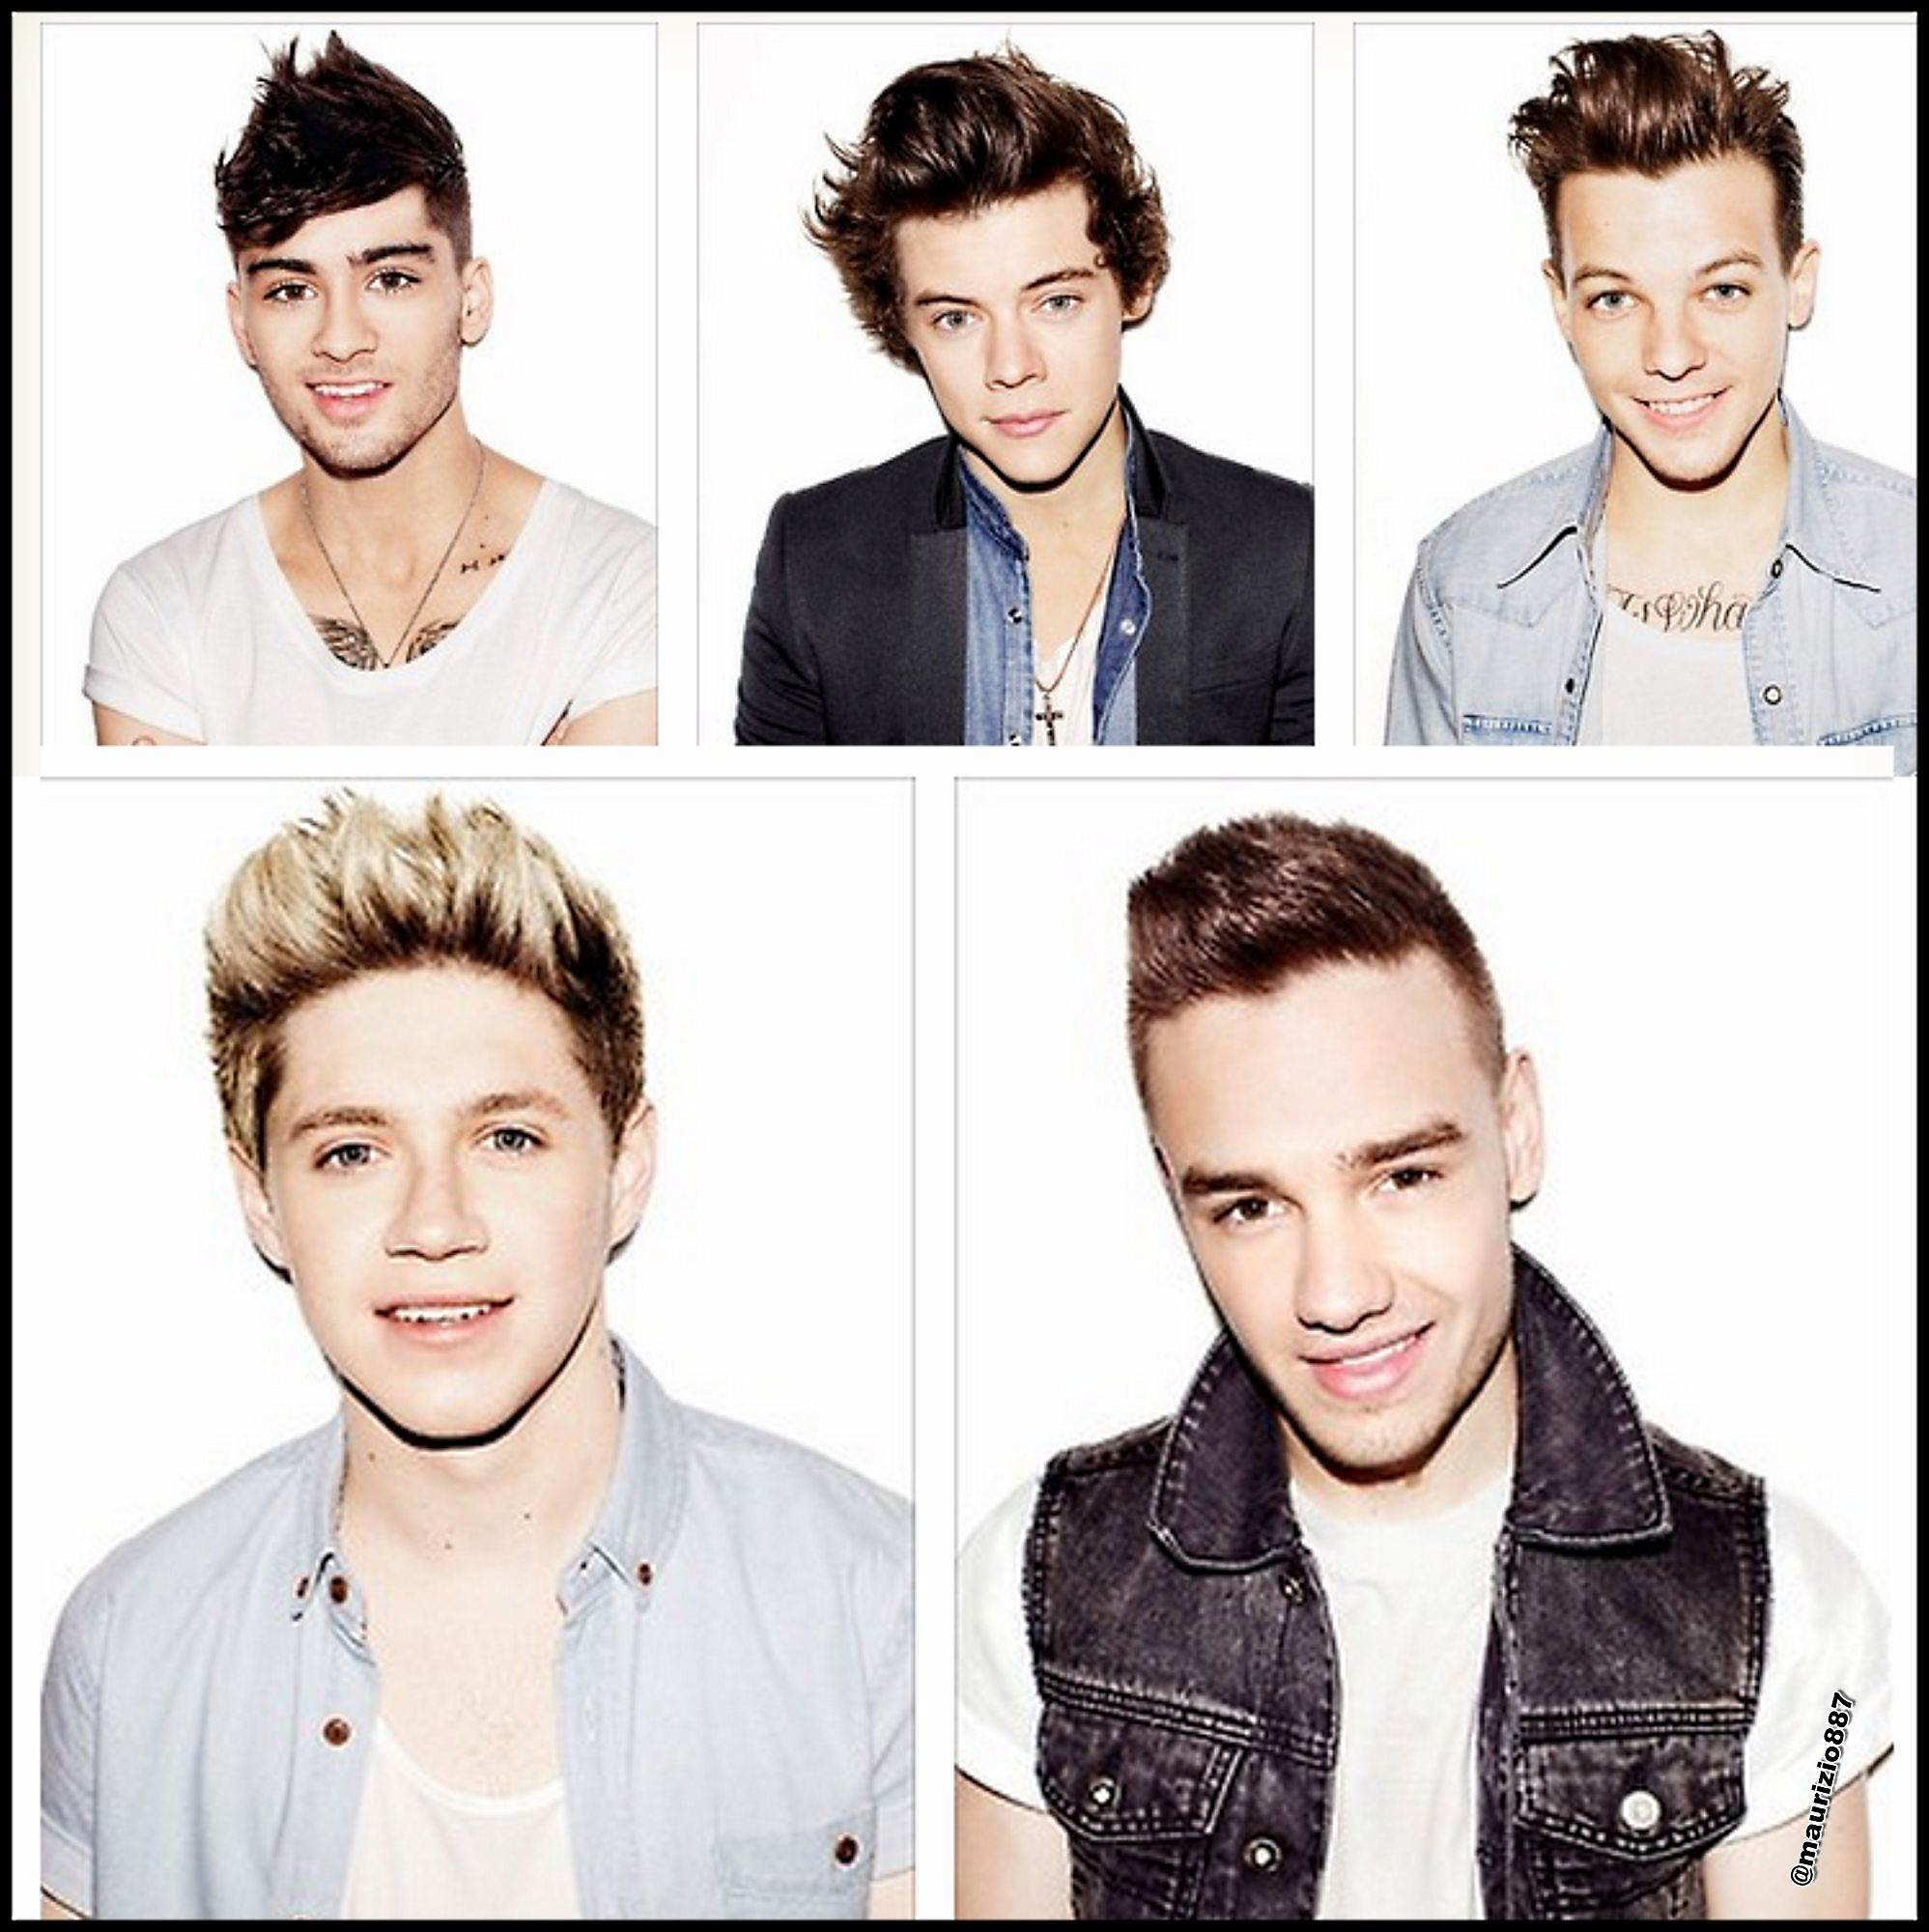 One Direction Photoshoot Tumblr 2013 One Direction images o...